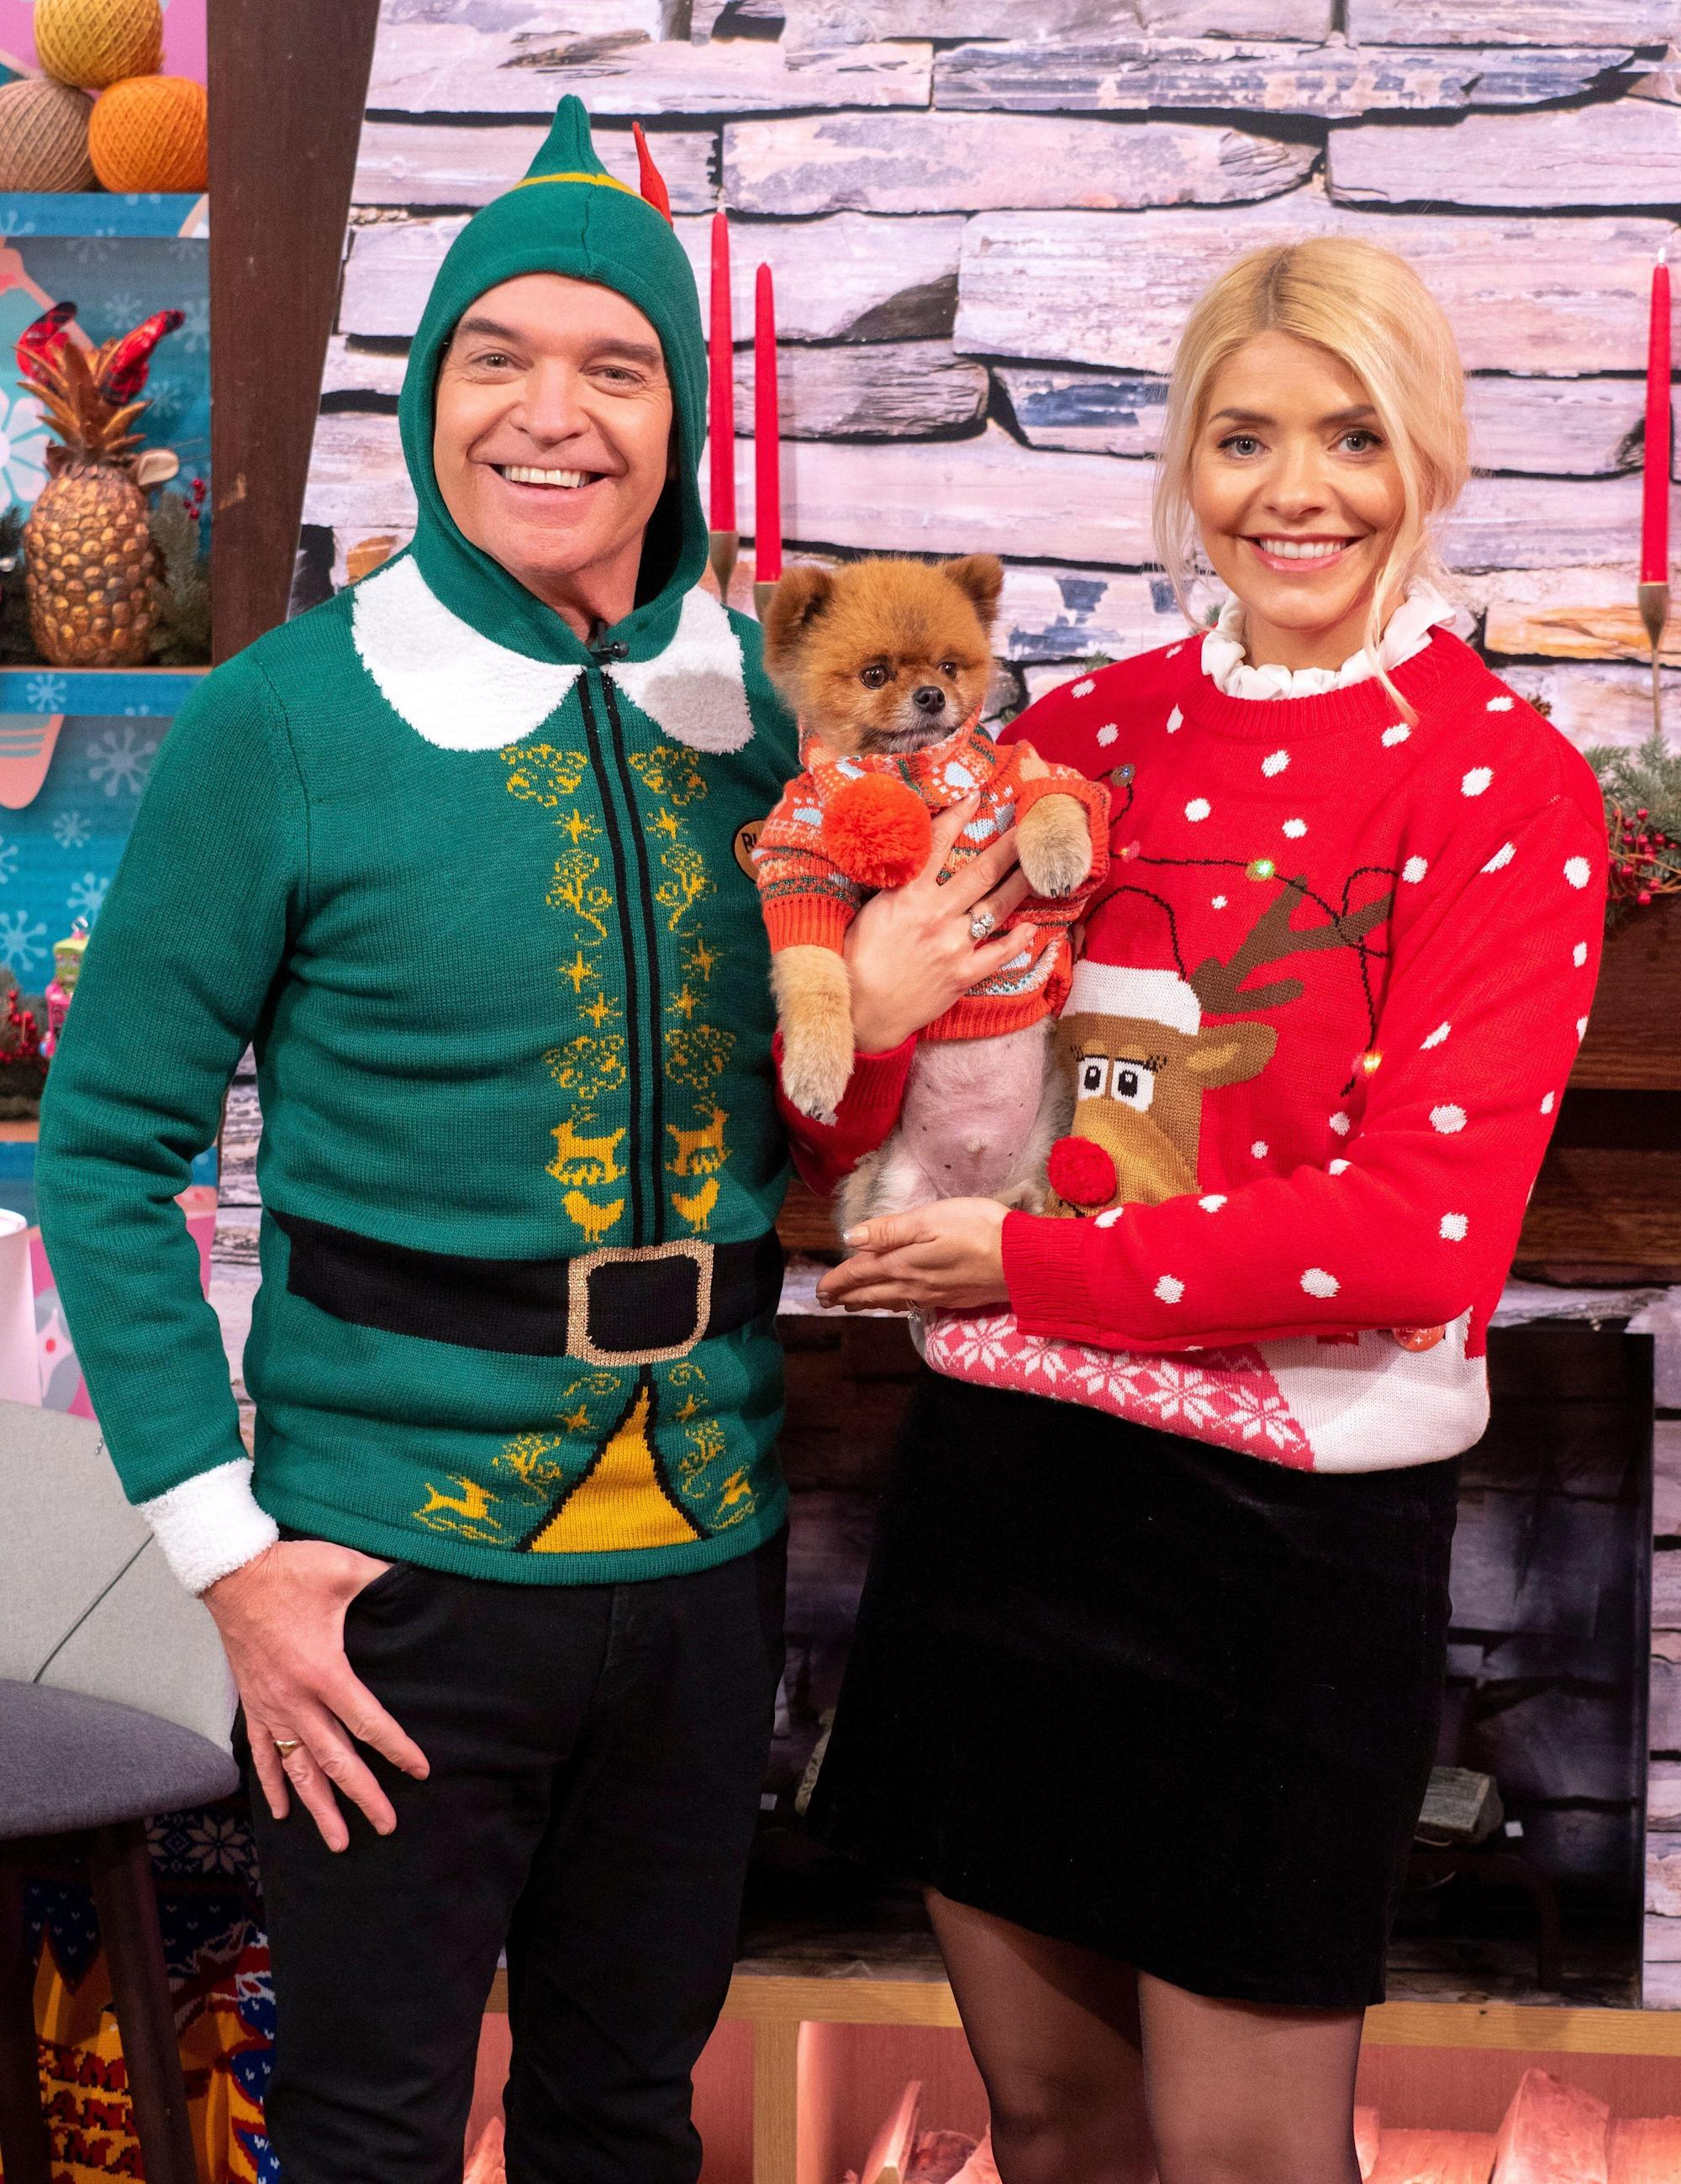 This Morning To Air On Christmas Day As ITV Unveils Festive Line-Up Of Shows